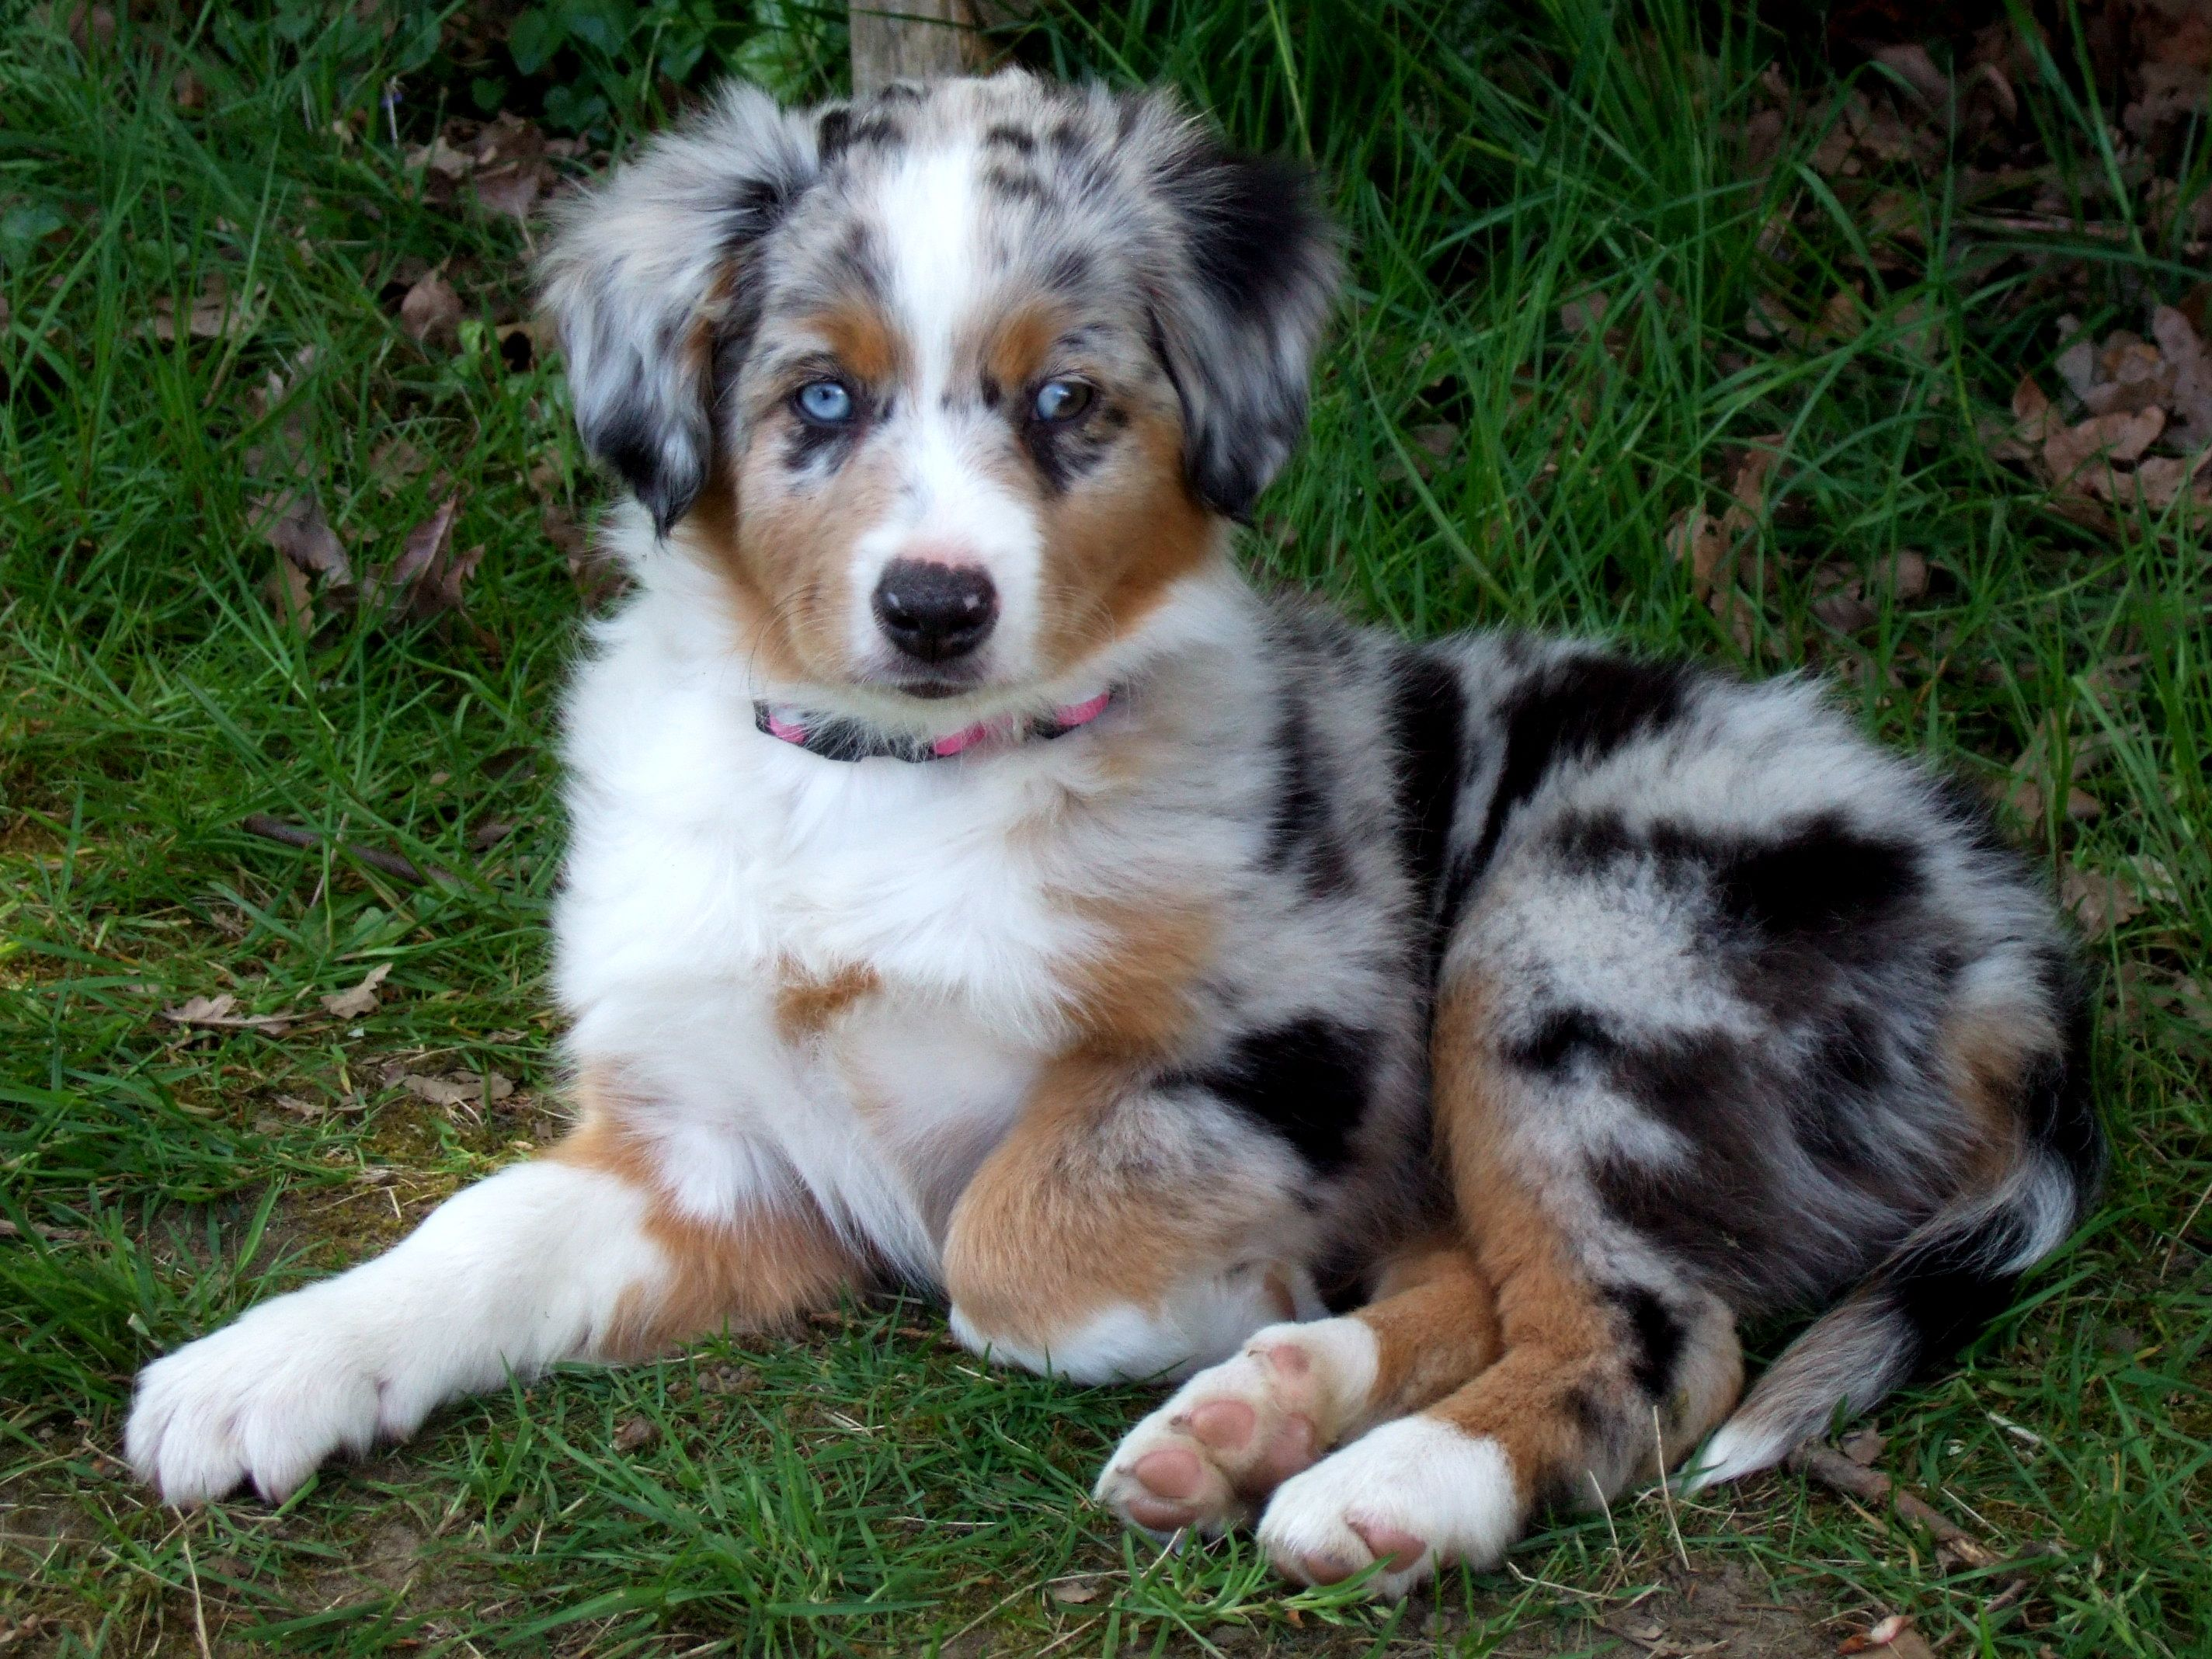 Snowleaf Miniature Australian Shepherds One Million Wallpapers Perros Bonitos Perritos Australianos Perros